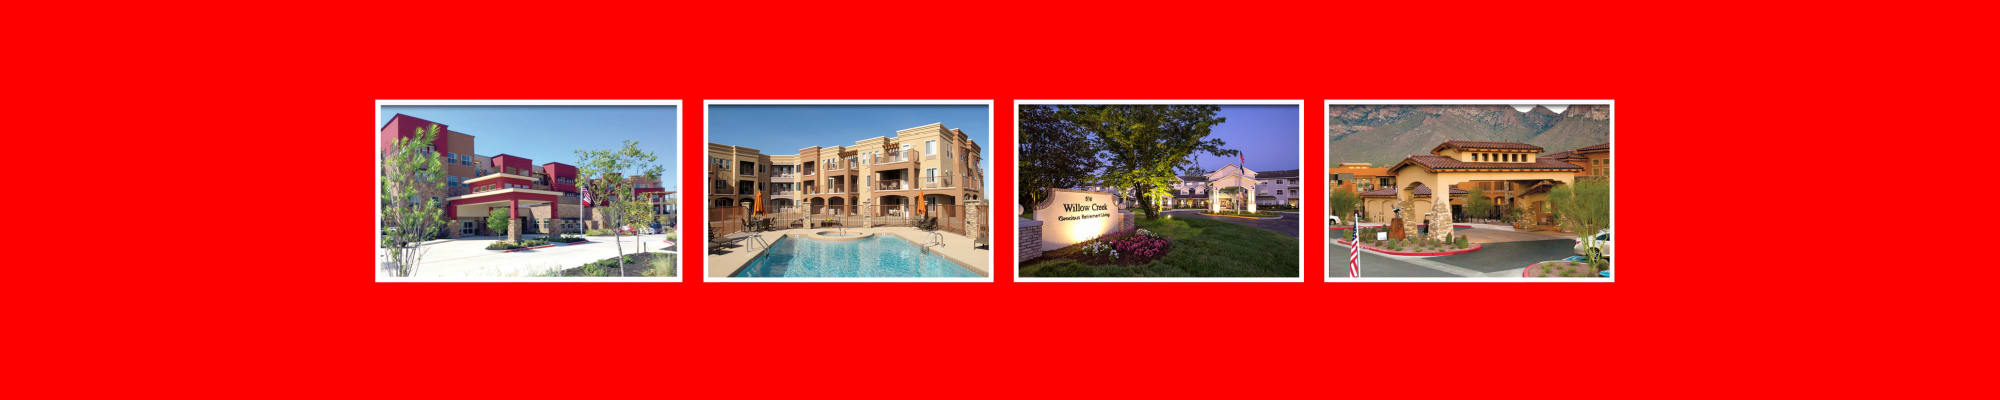 Find other Hawthorn Retirement Group communities on our website at Alexis Estates Gracious Retirement Living in Allen, Texas